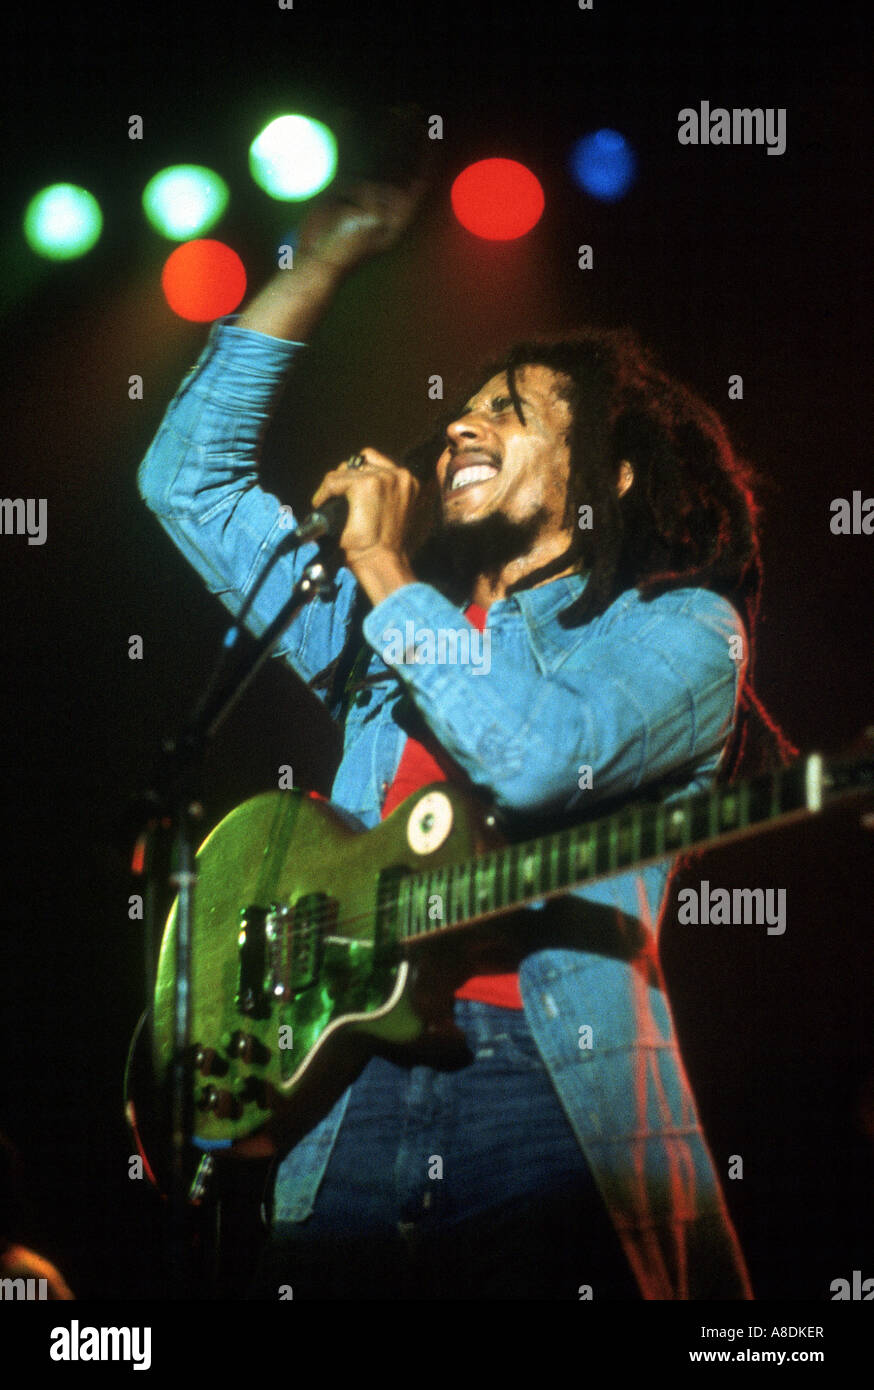 a look at the life of bob marley the jamaican reggae musician Nesta robert marley—known to the world as bob marley—was a famous jamaican reggae musician born on february 6th, 1945 he began his career in a band called the wailers in 1963 in the late 1960s, marley became a rastafarian and this heavily influenced his music during the 1970s, marley formed.